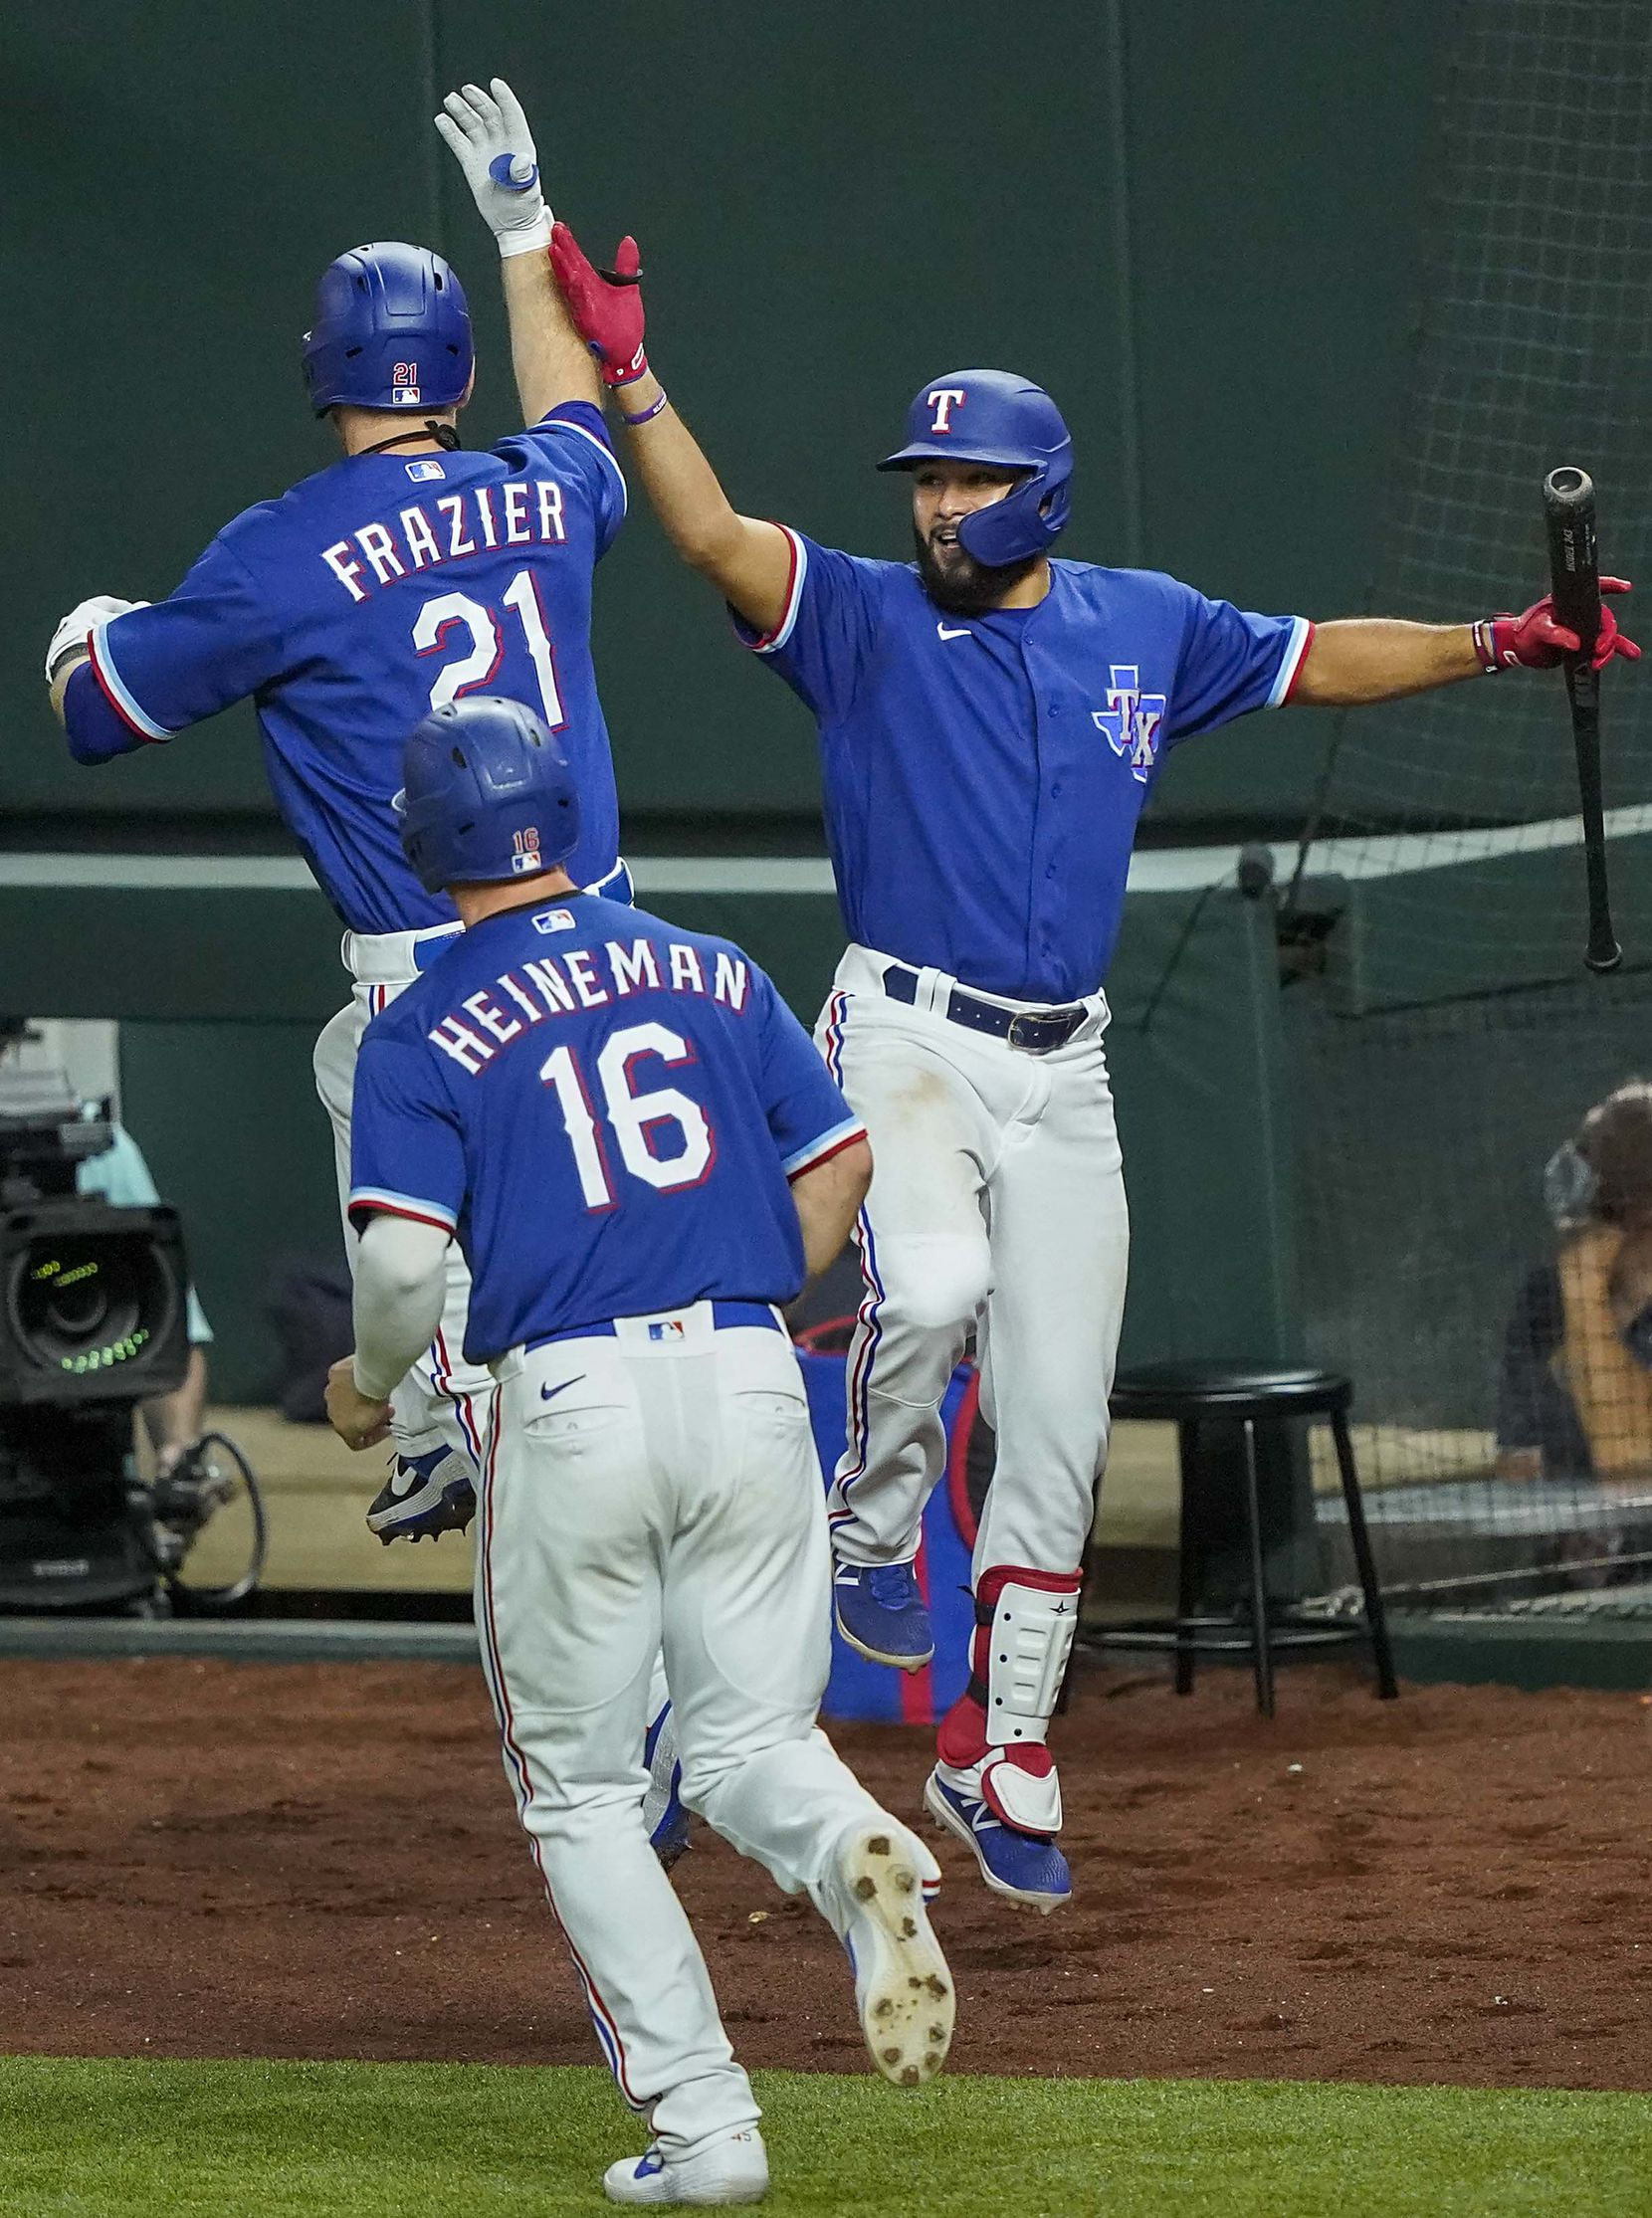 Texas Rangers first baseman Todd Frazier celebrates with Isiah Kiner-Falefa after hitting a 3-run home run during the fifth inning of an exhibition game against the Colorado Rockies at Globe Life Field on Wednesday, July 22, 2020.